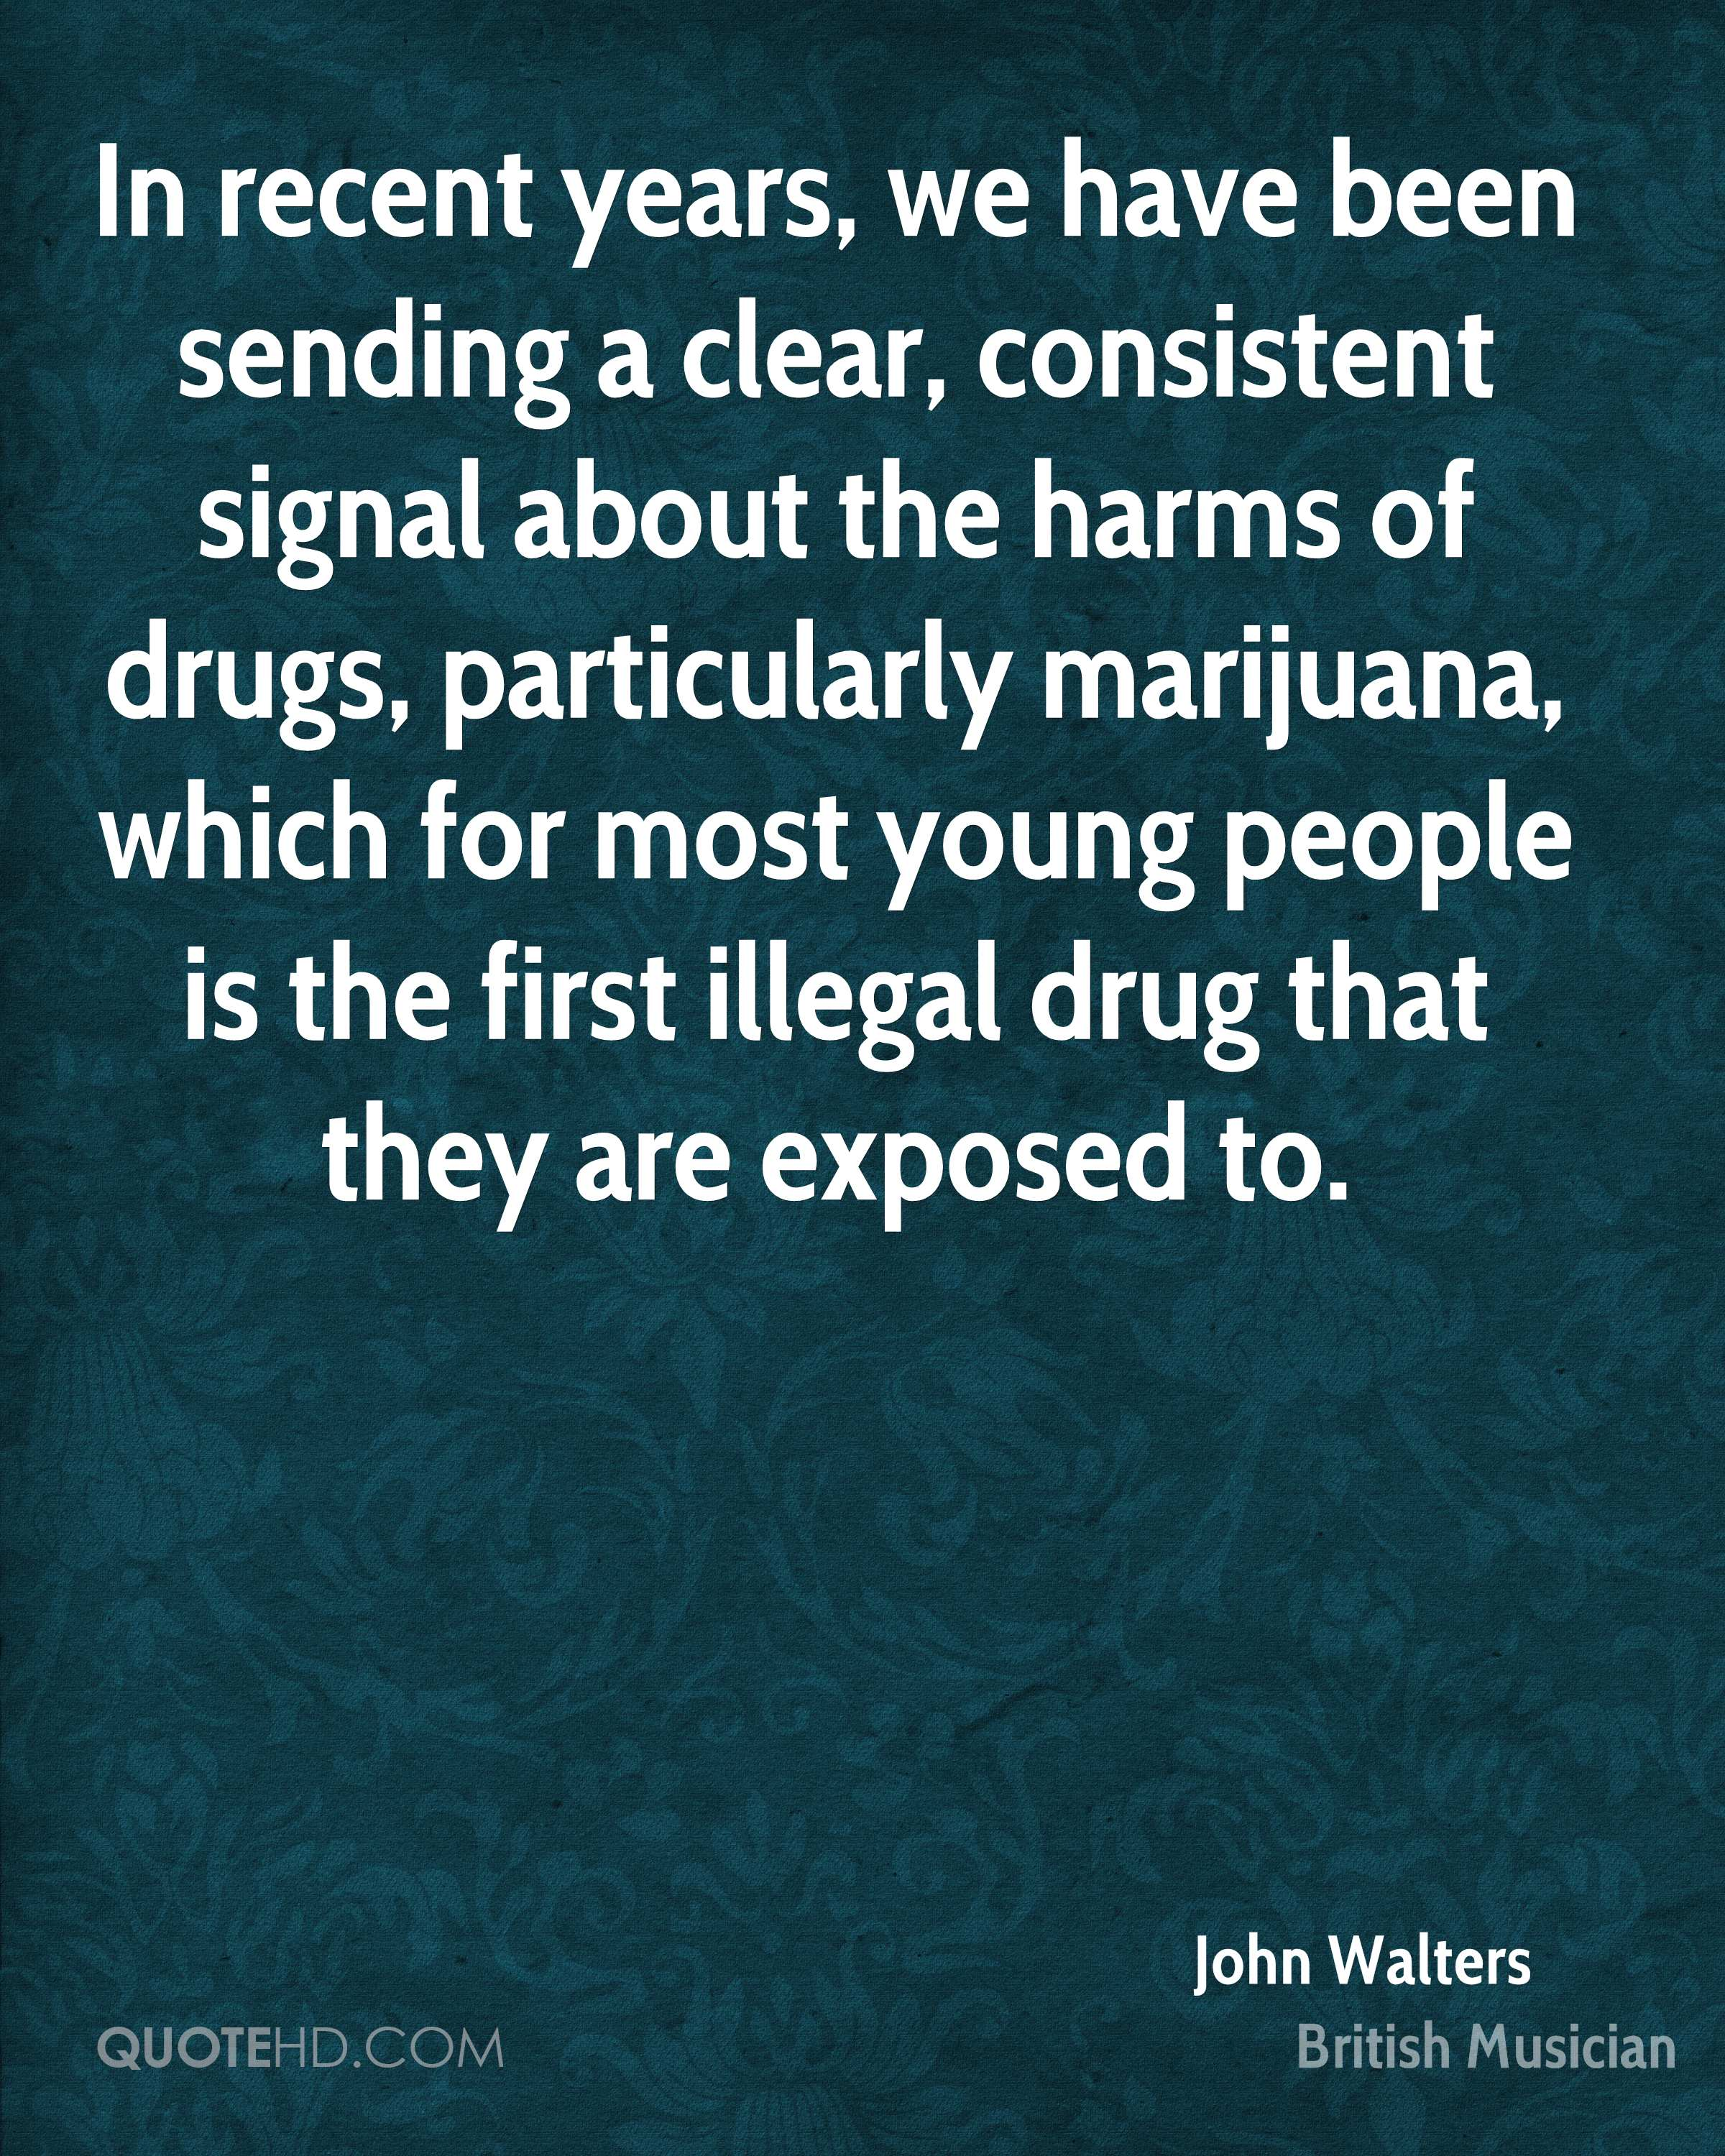 In recent years, we have been sending a clear, consistent signal about the harms of drugs, particularly marijuana, which for most young people is the first illegal drug that they are exposed to.